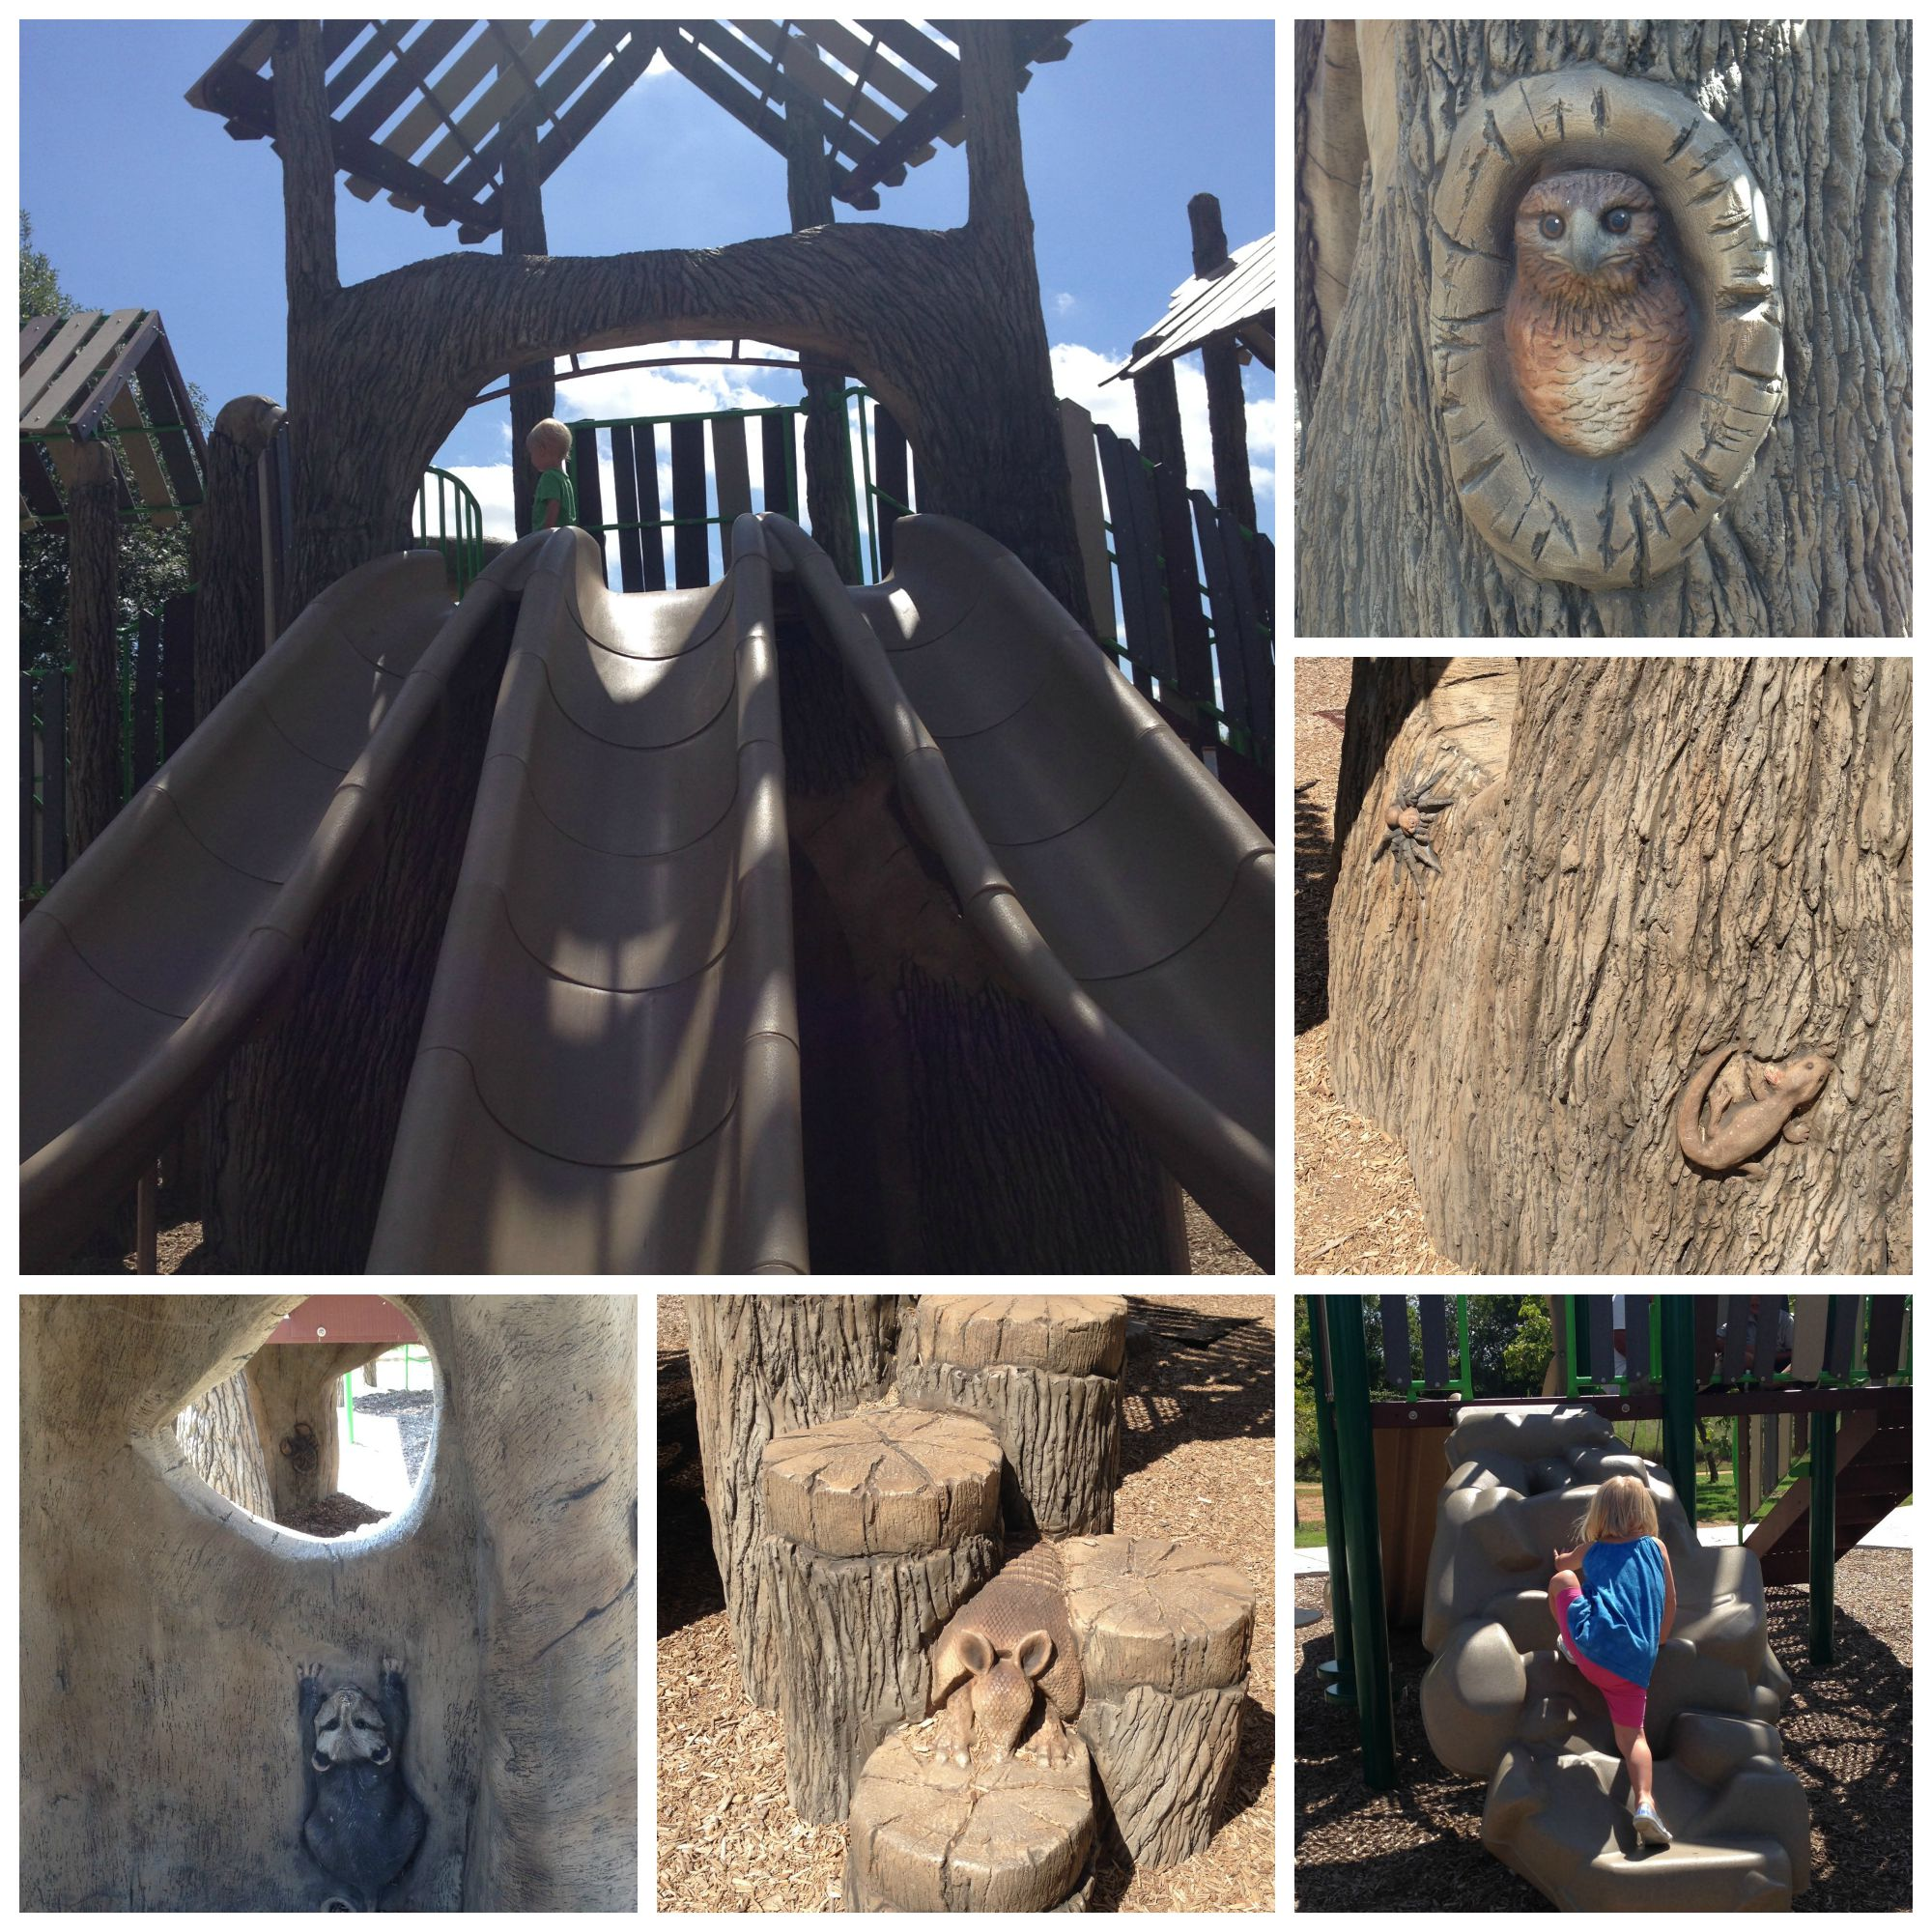 Treehouse playscape with animals to discover!